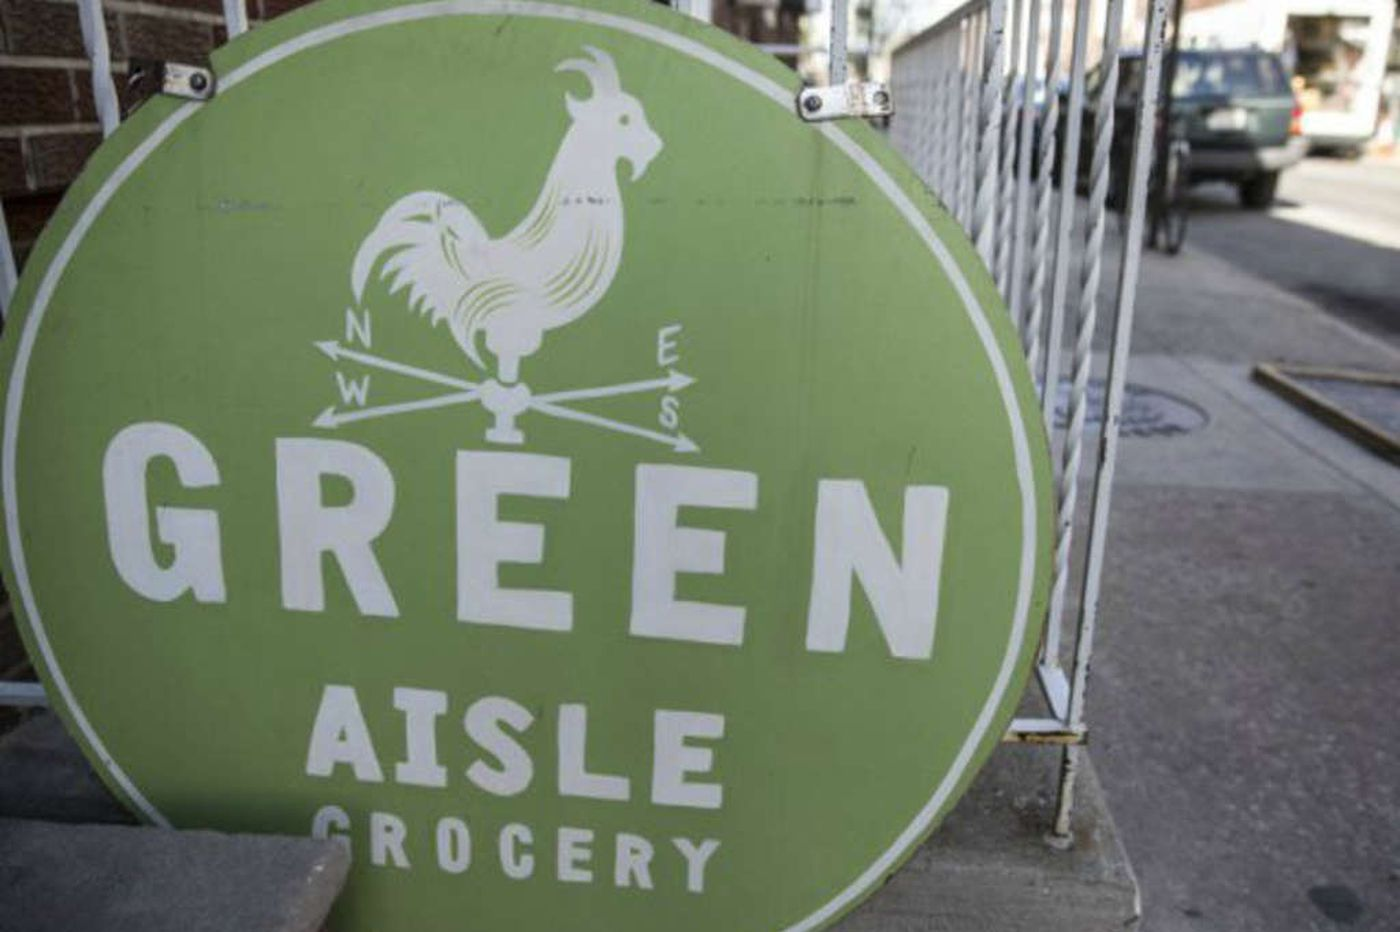 Green Aisle Grocery to close its 2 locations